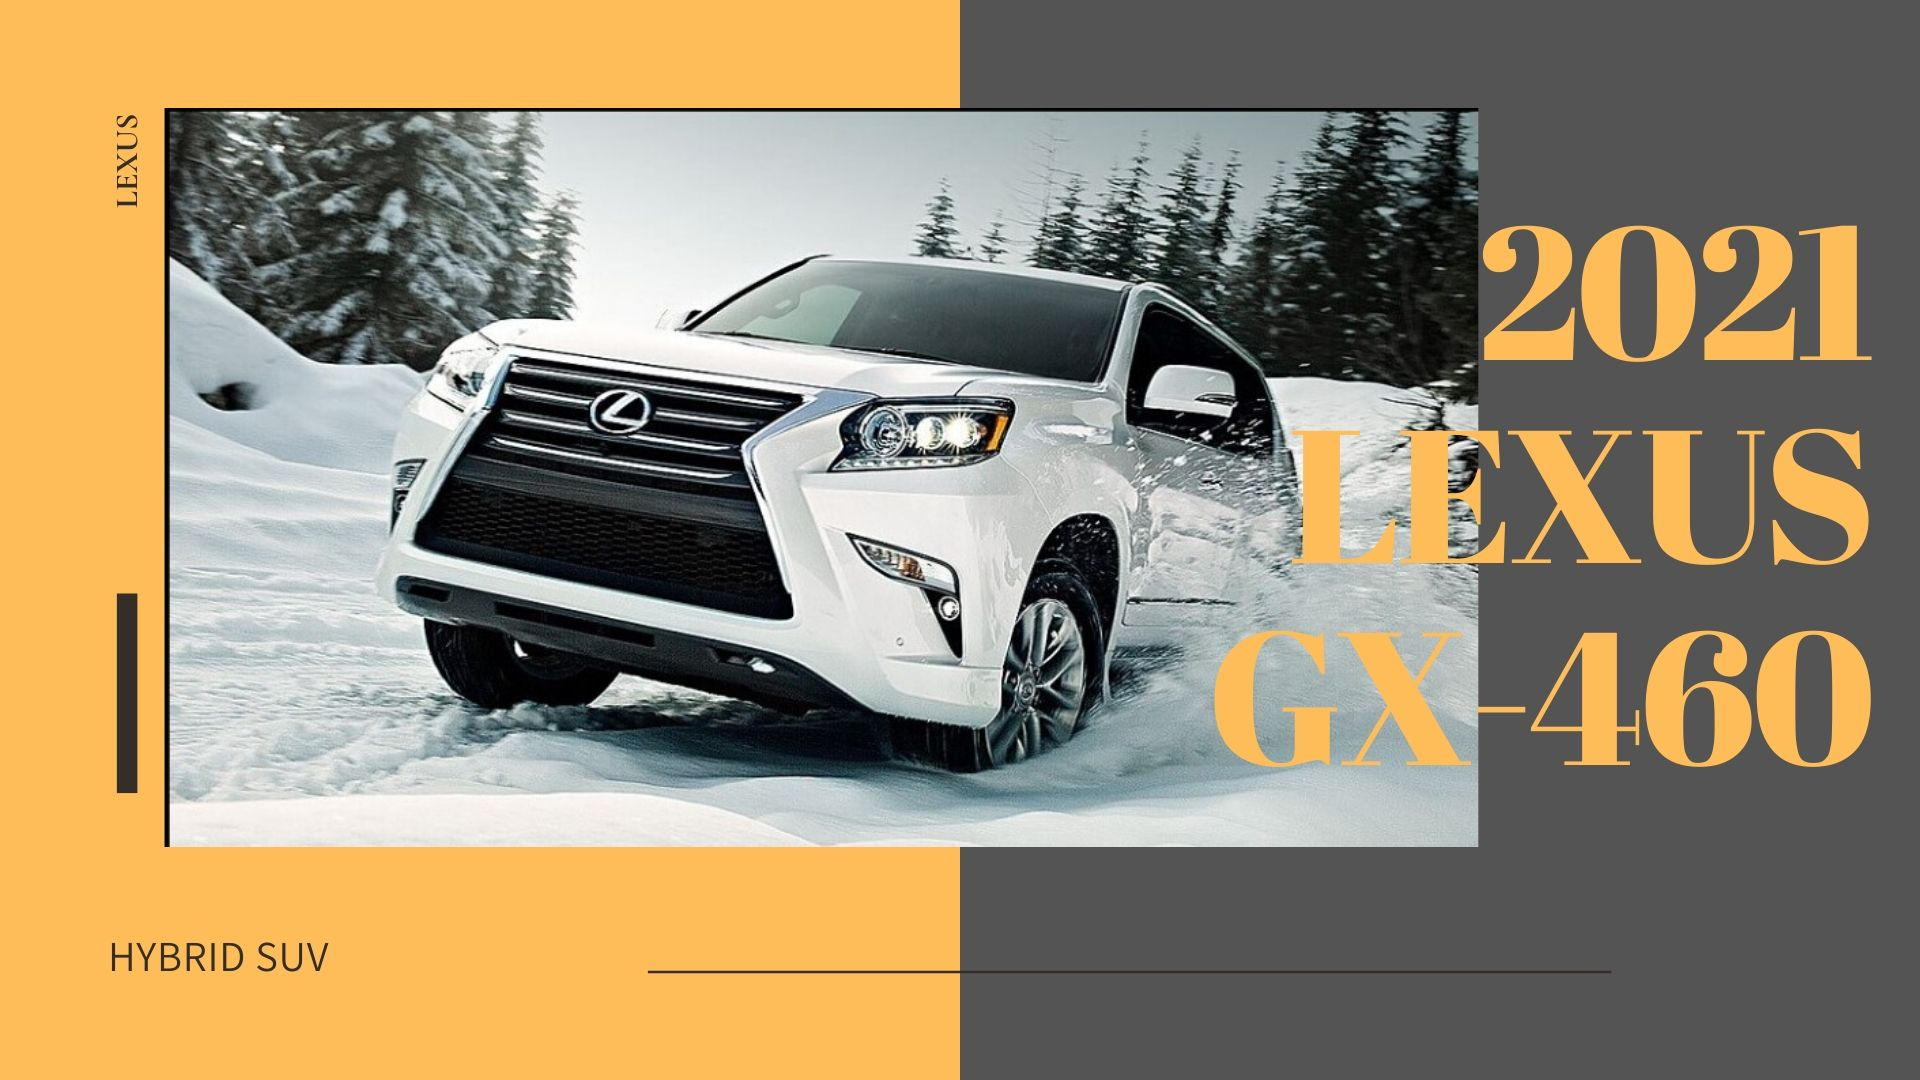 2021 Lexus GX 460 Review